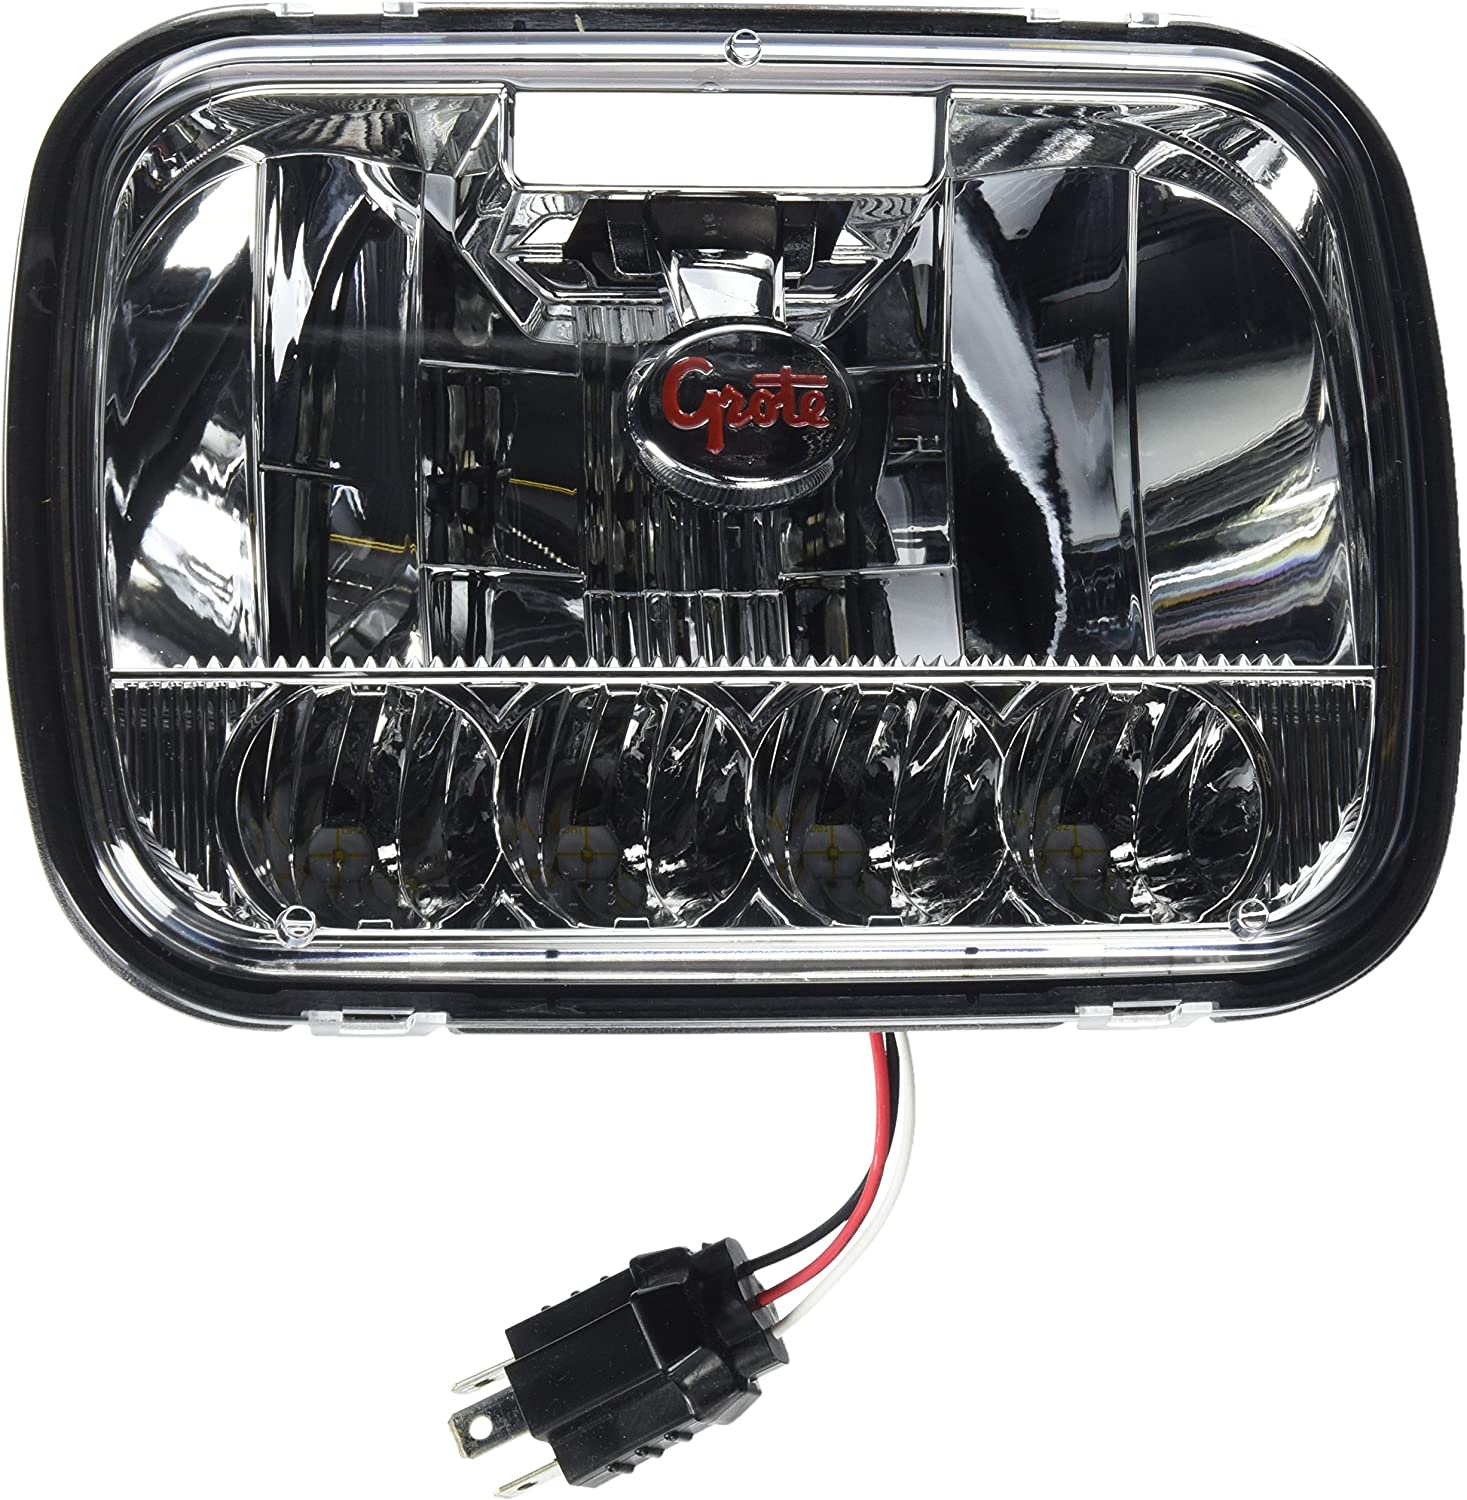 Grote 90951-5 Natural Sunlight Color Temperature, 5-by-7 inches, Polycarbonate Lens LED Sealed Beam Headlight